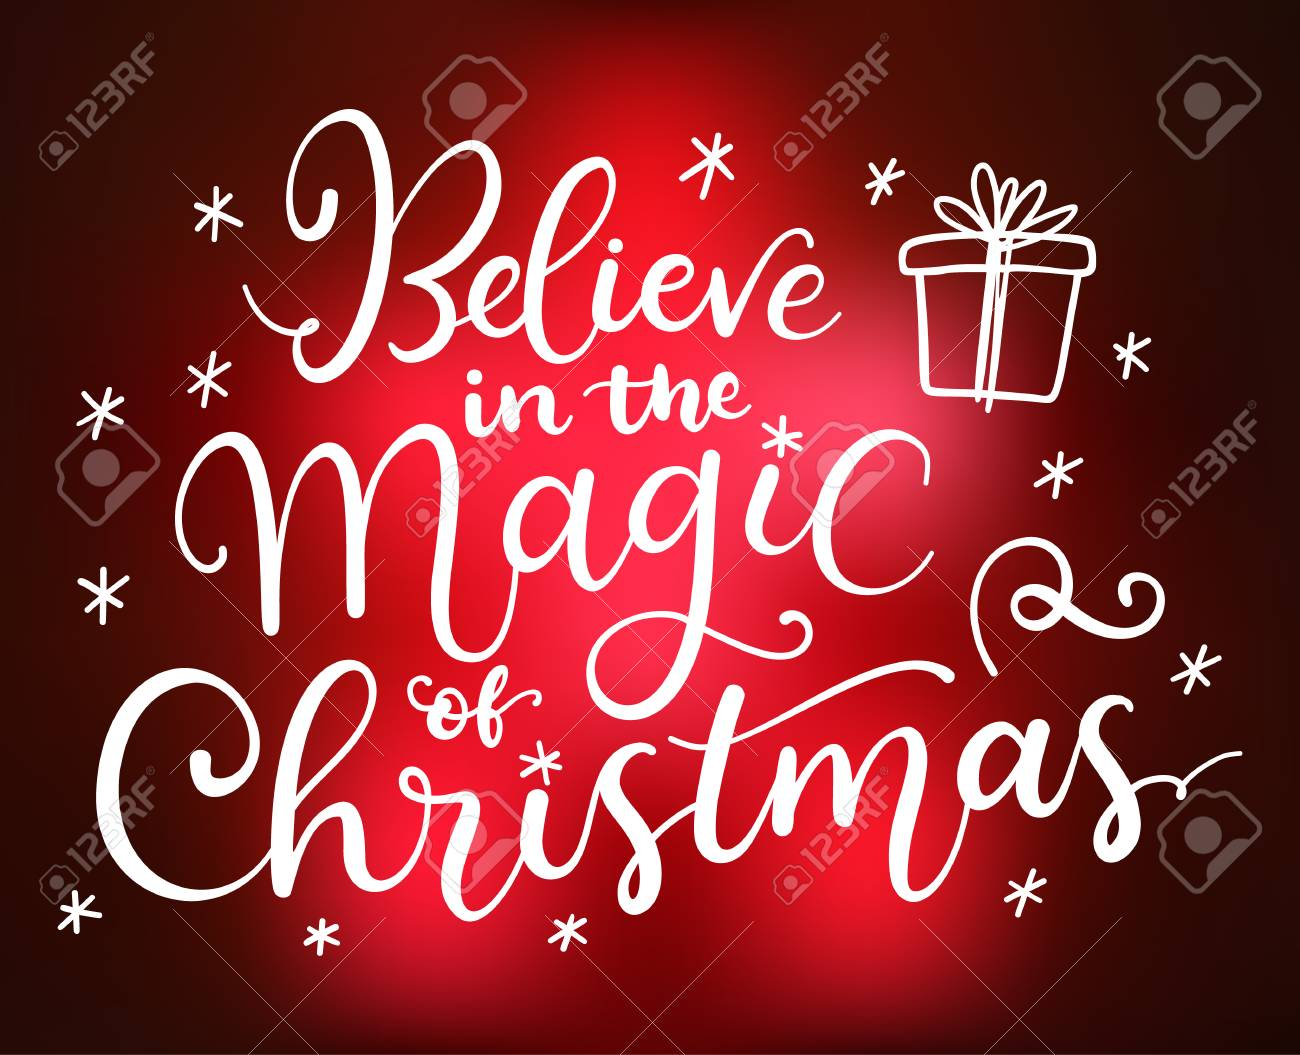 Magic Of Christmas.Believe In The Magic Of Christmas Vector Greeting Card With